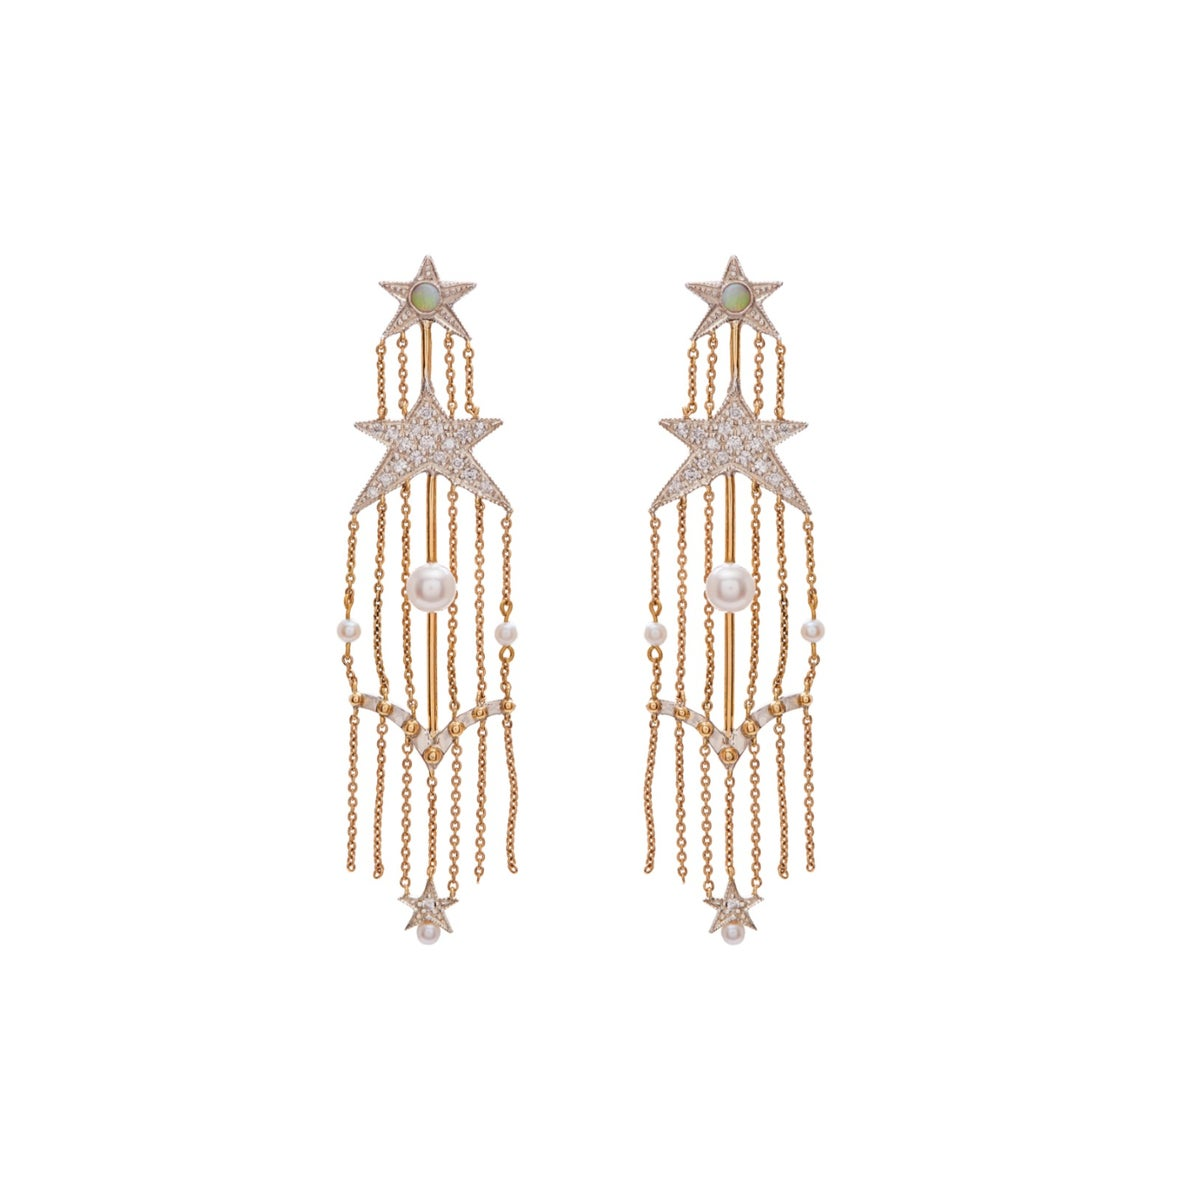 Image of Un Hada Cloud Dance Earrings